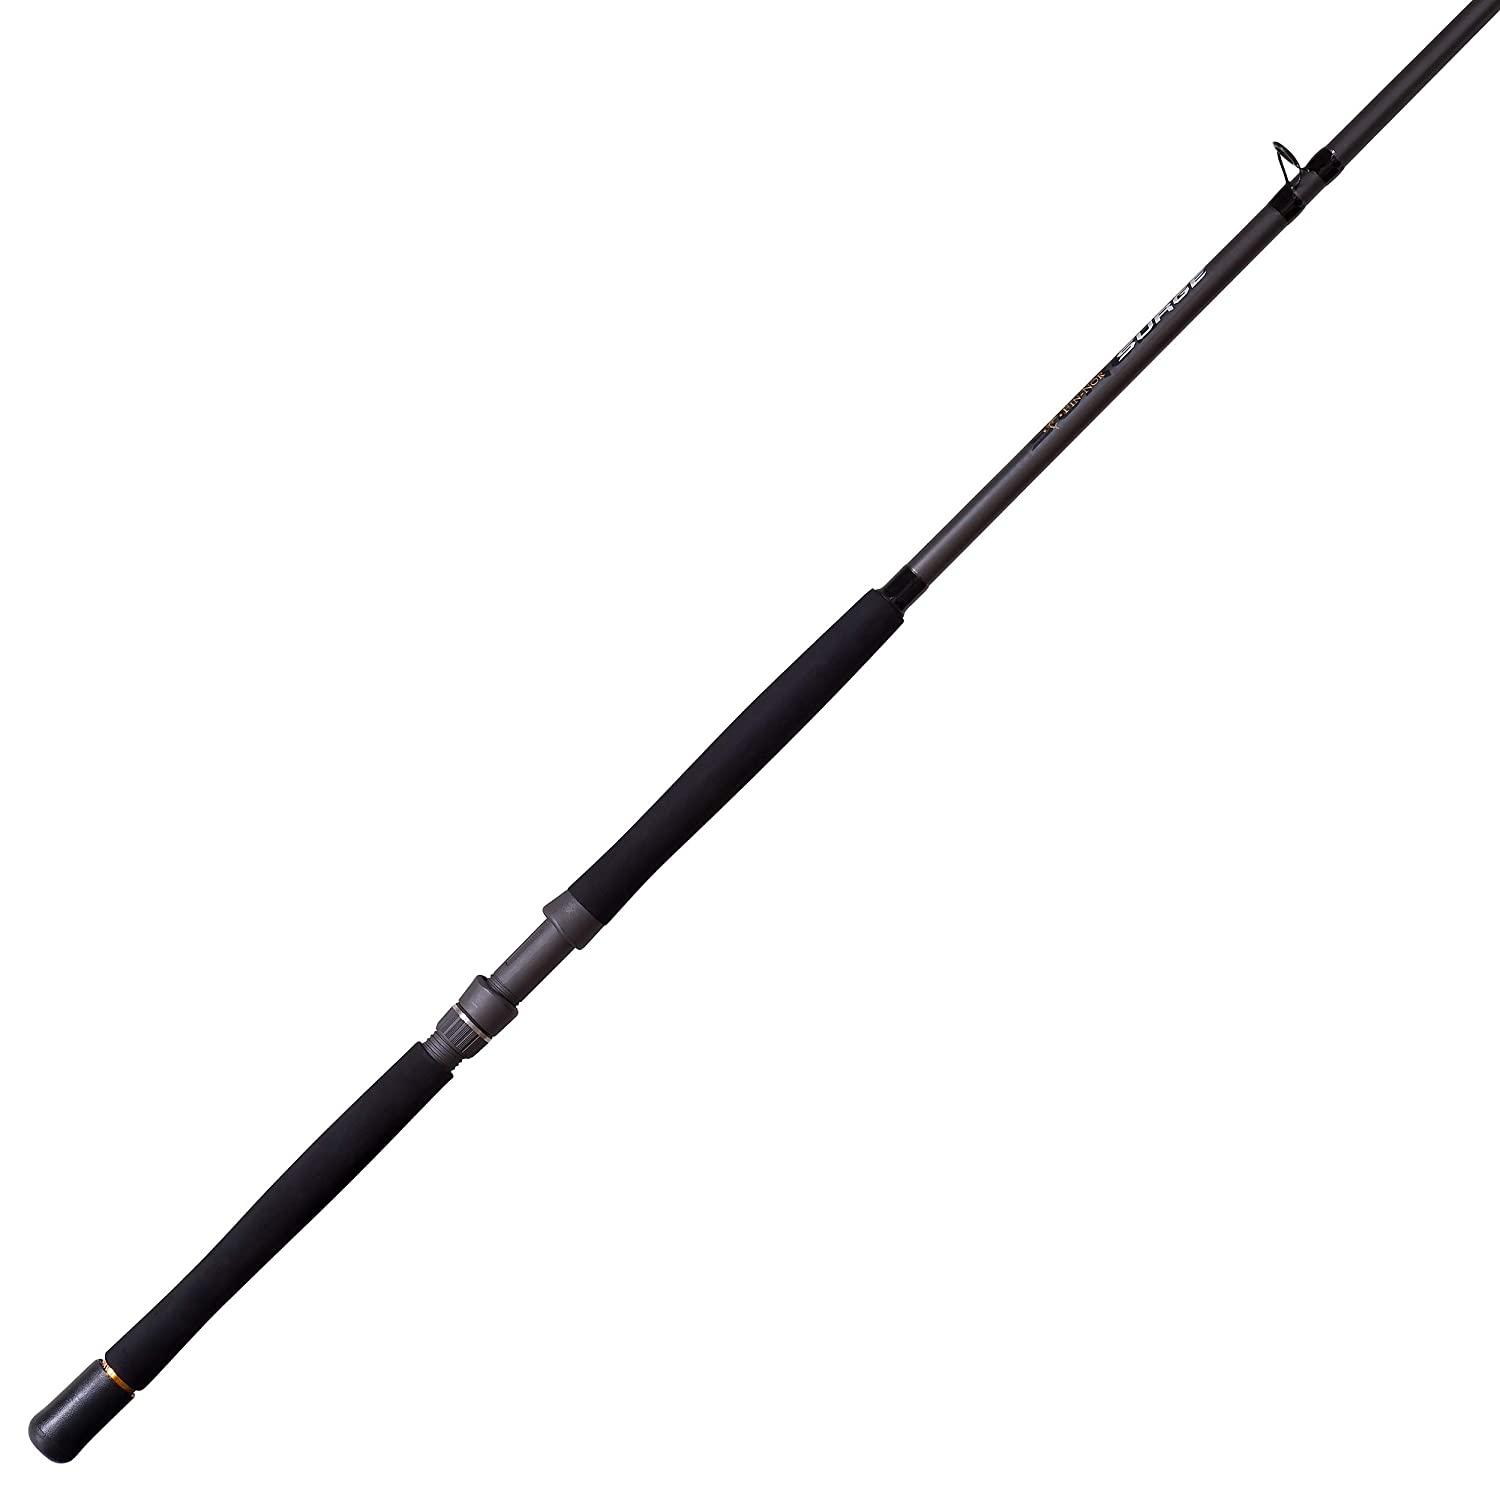 Fin-Nor Surge Spinning Fishing Rod, E-Glass and Graphite Rod with Double-Footed Aluminum Oxide Guides, 7-Foot 30-Pound Moderate Action, Contoured EVA Handle